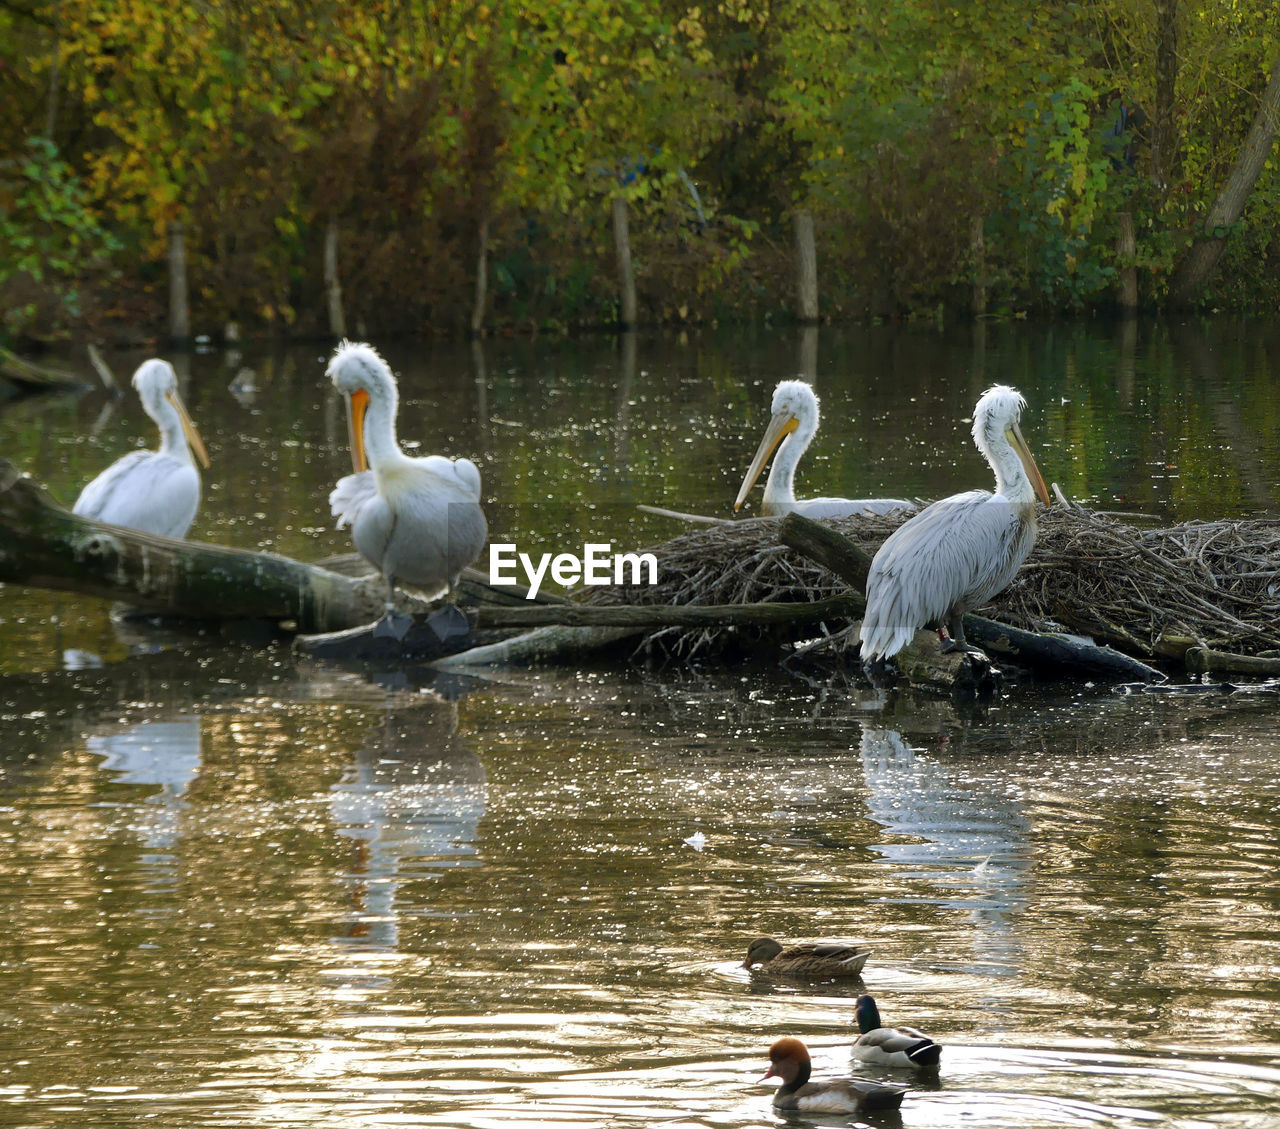 water, animal wildlife, bird, vertebrate, animal themes, animals in the wild, group of animals, animal, lake, reflection, nature, waterfront, day, no people, tree, white color, beauty in nature, plant, swan, flock of birds